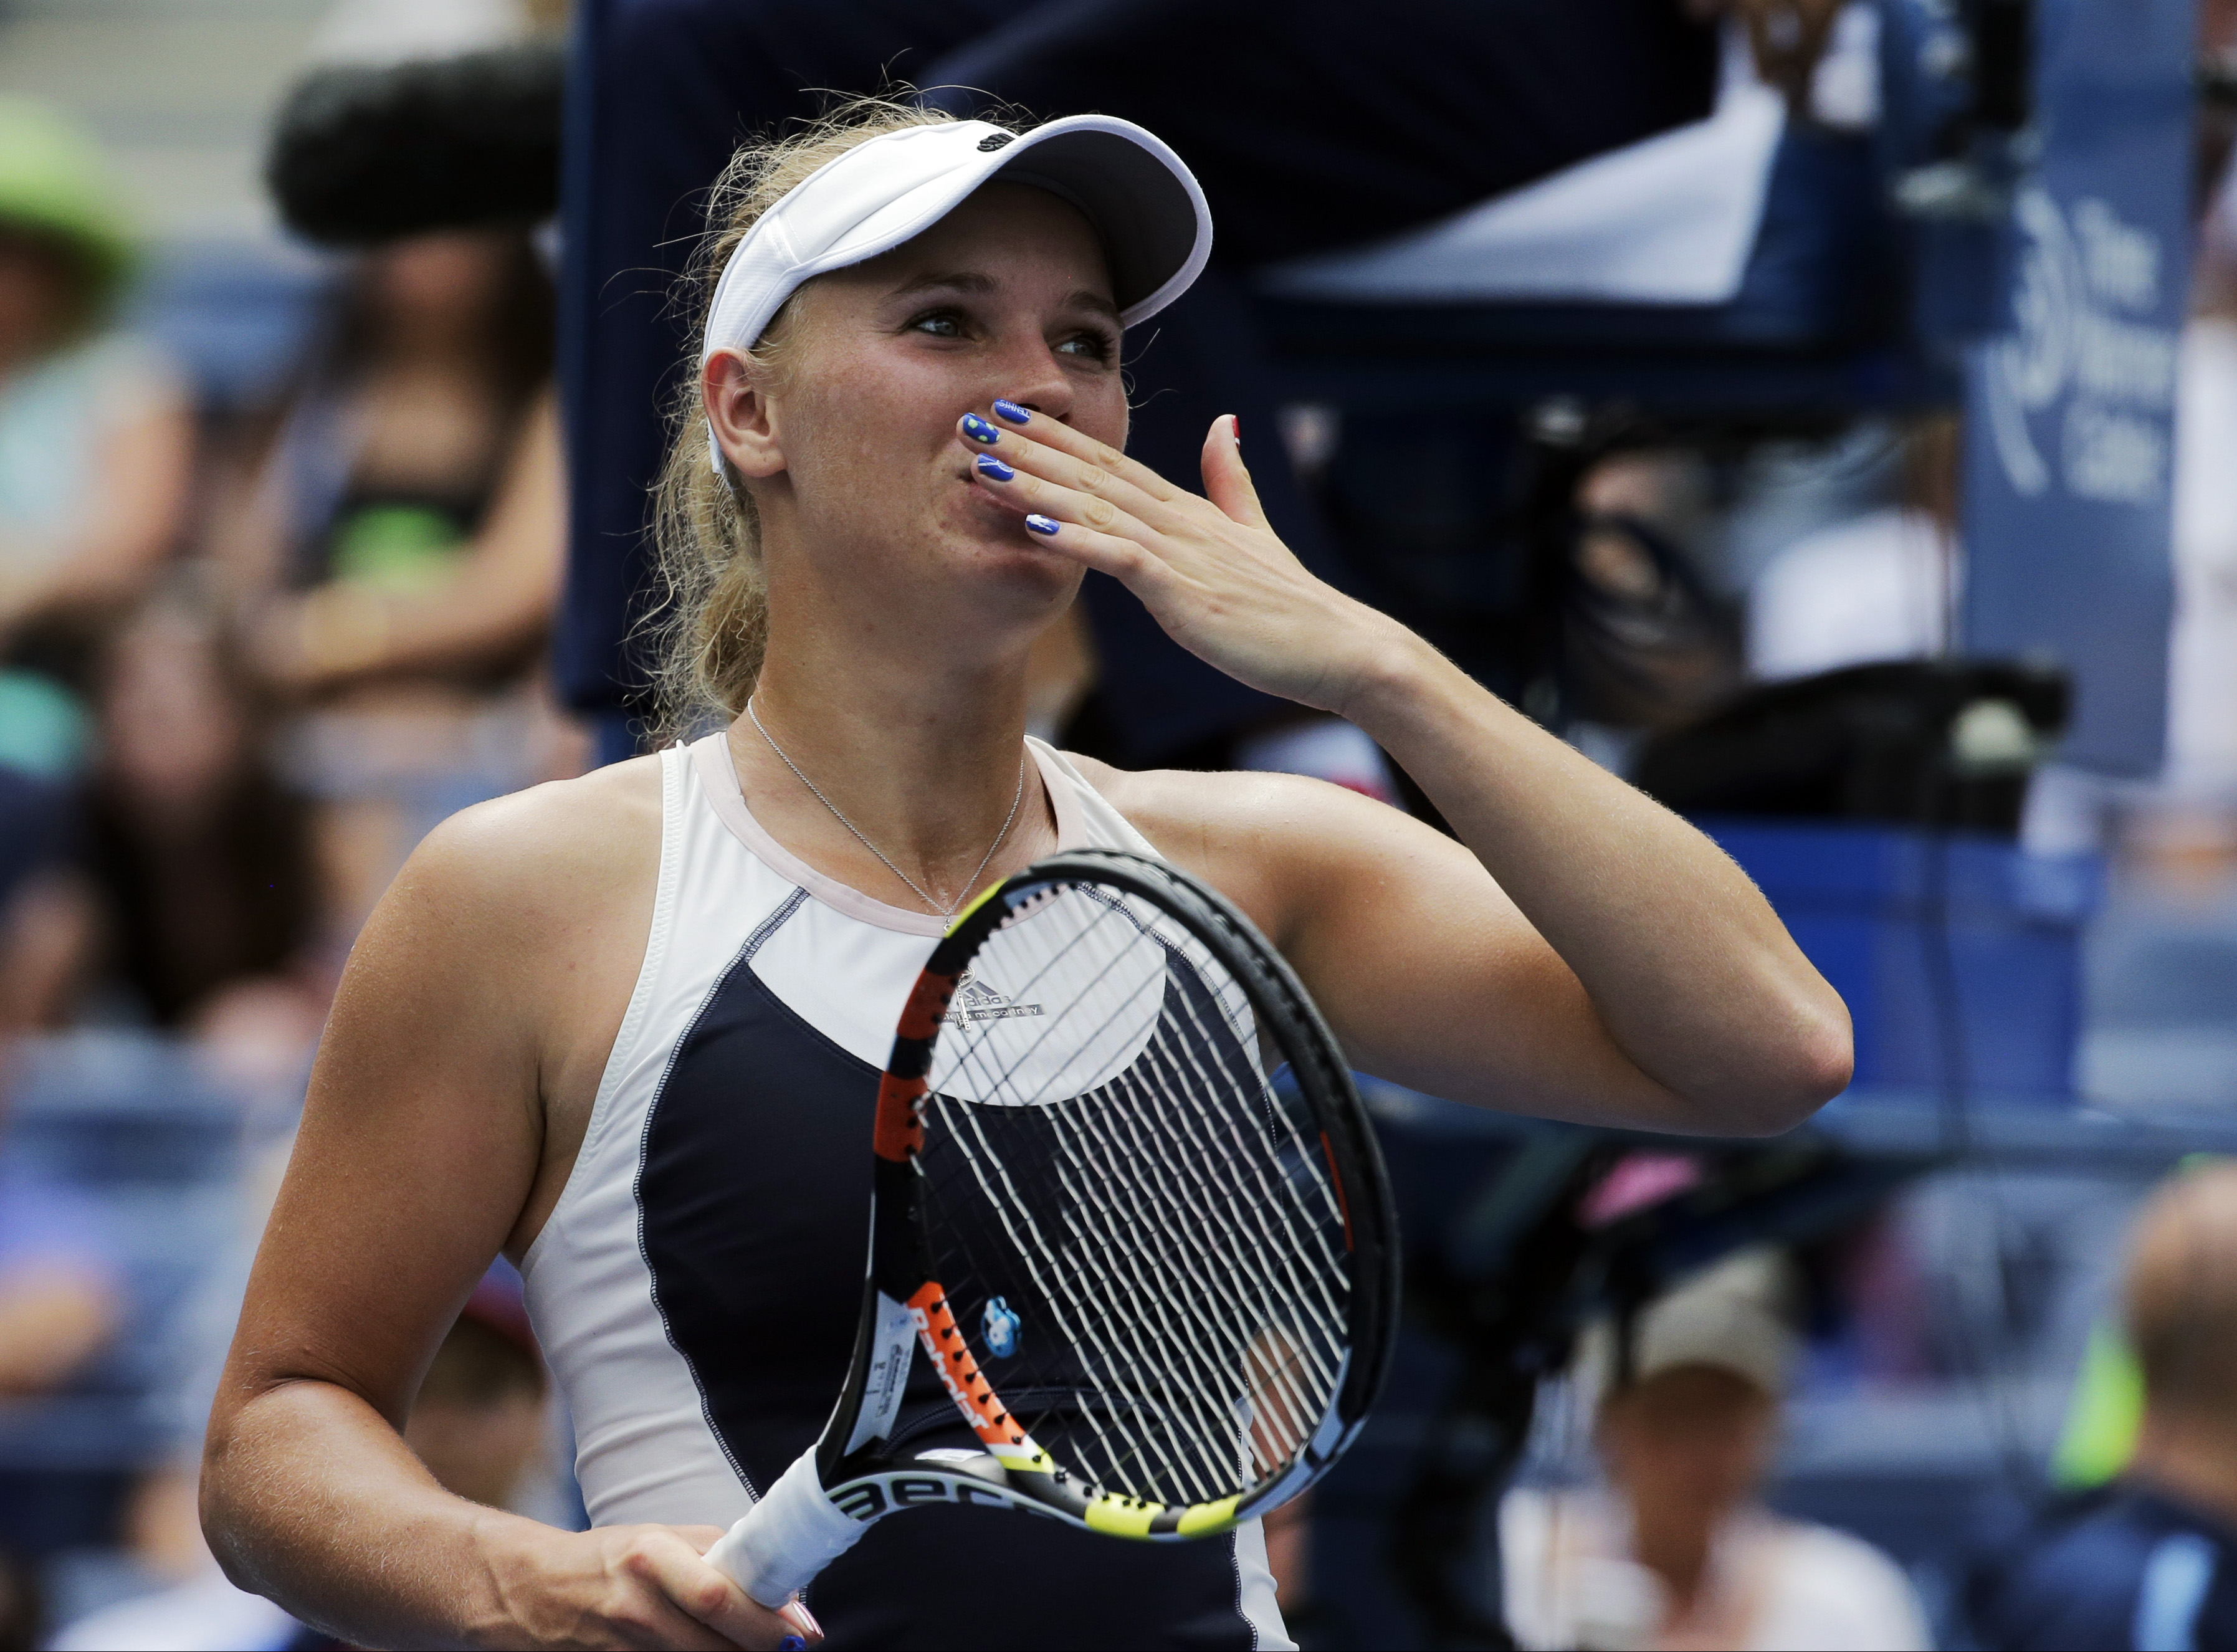 Caroline Wozniacki, of Denmark, blows kisses to the crowd after beating Jamie Loeb, of the United States, during the first round of the U.S. Open tennis tournament, Tuesday, Sept. 1, 2015, in New York. (AP Photo/Charles Krupa)